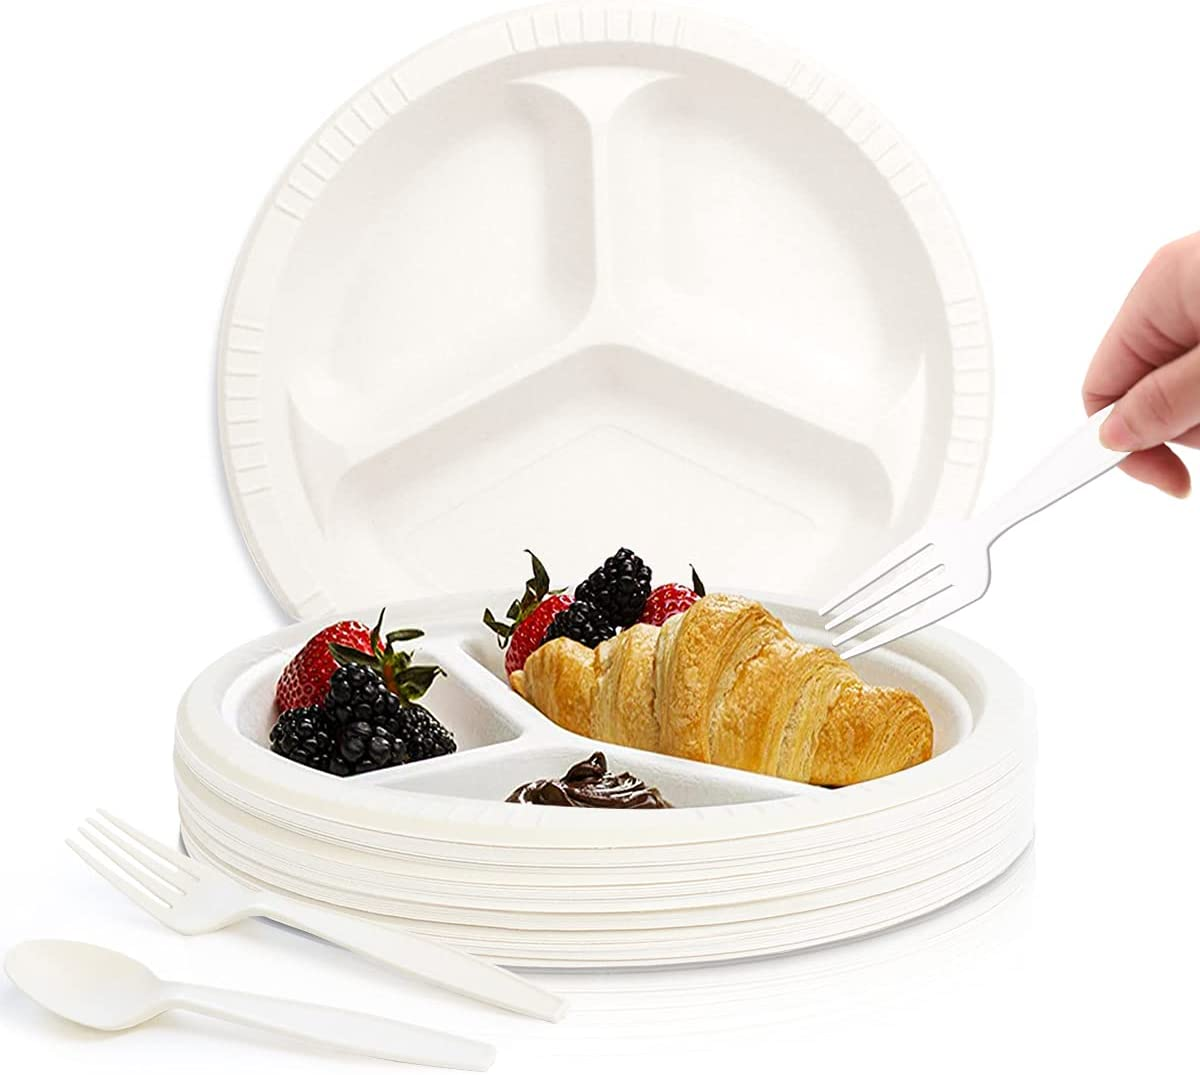 Disposable Three-part dinner plate set Super beauty product restock quality top! pcs 150 spoons for Fort Worth Mall plates